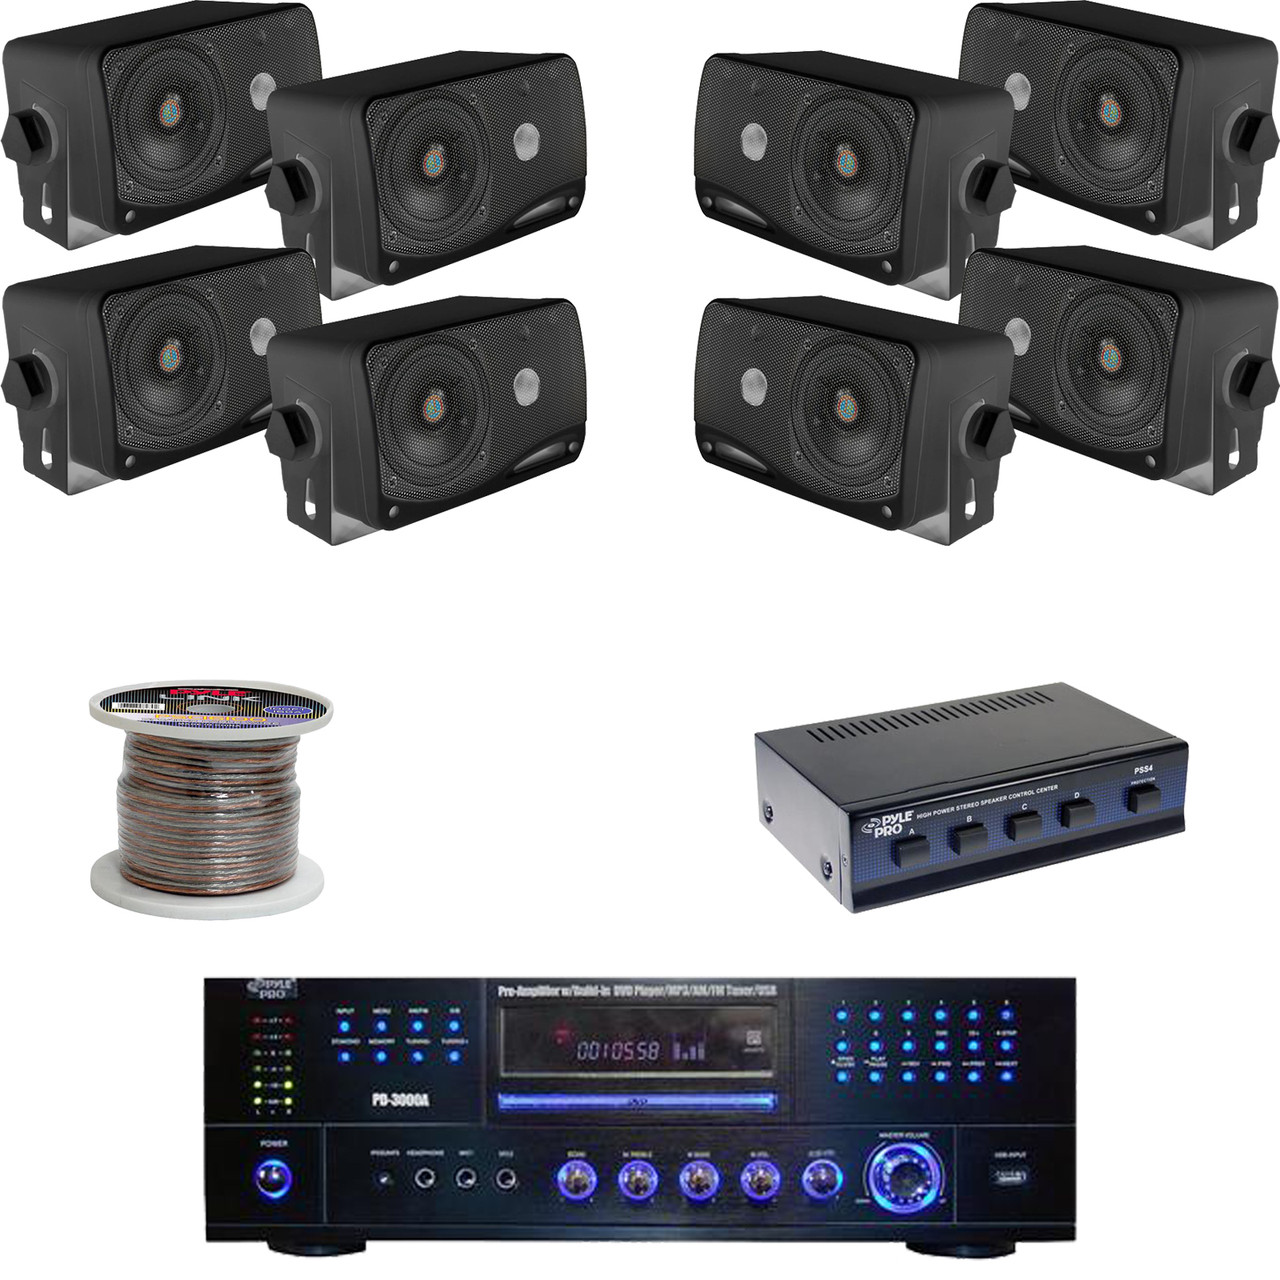 4 Way Speaker Selector Box